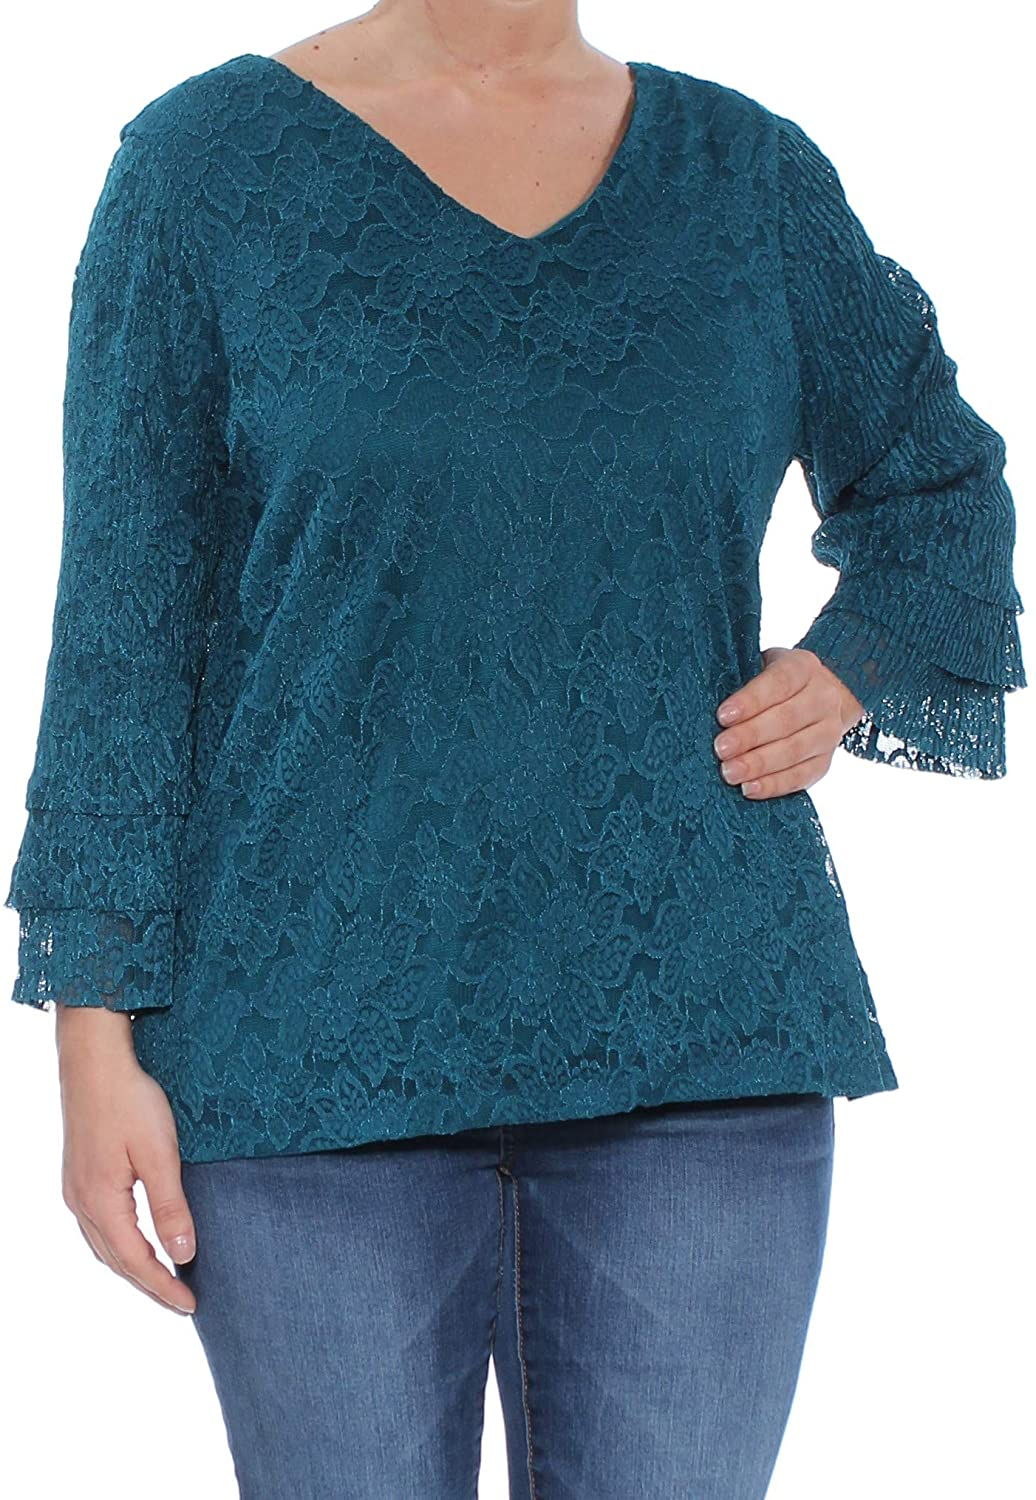 Charter Club Tiered Lace Top (Deep Pine, L)